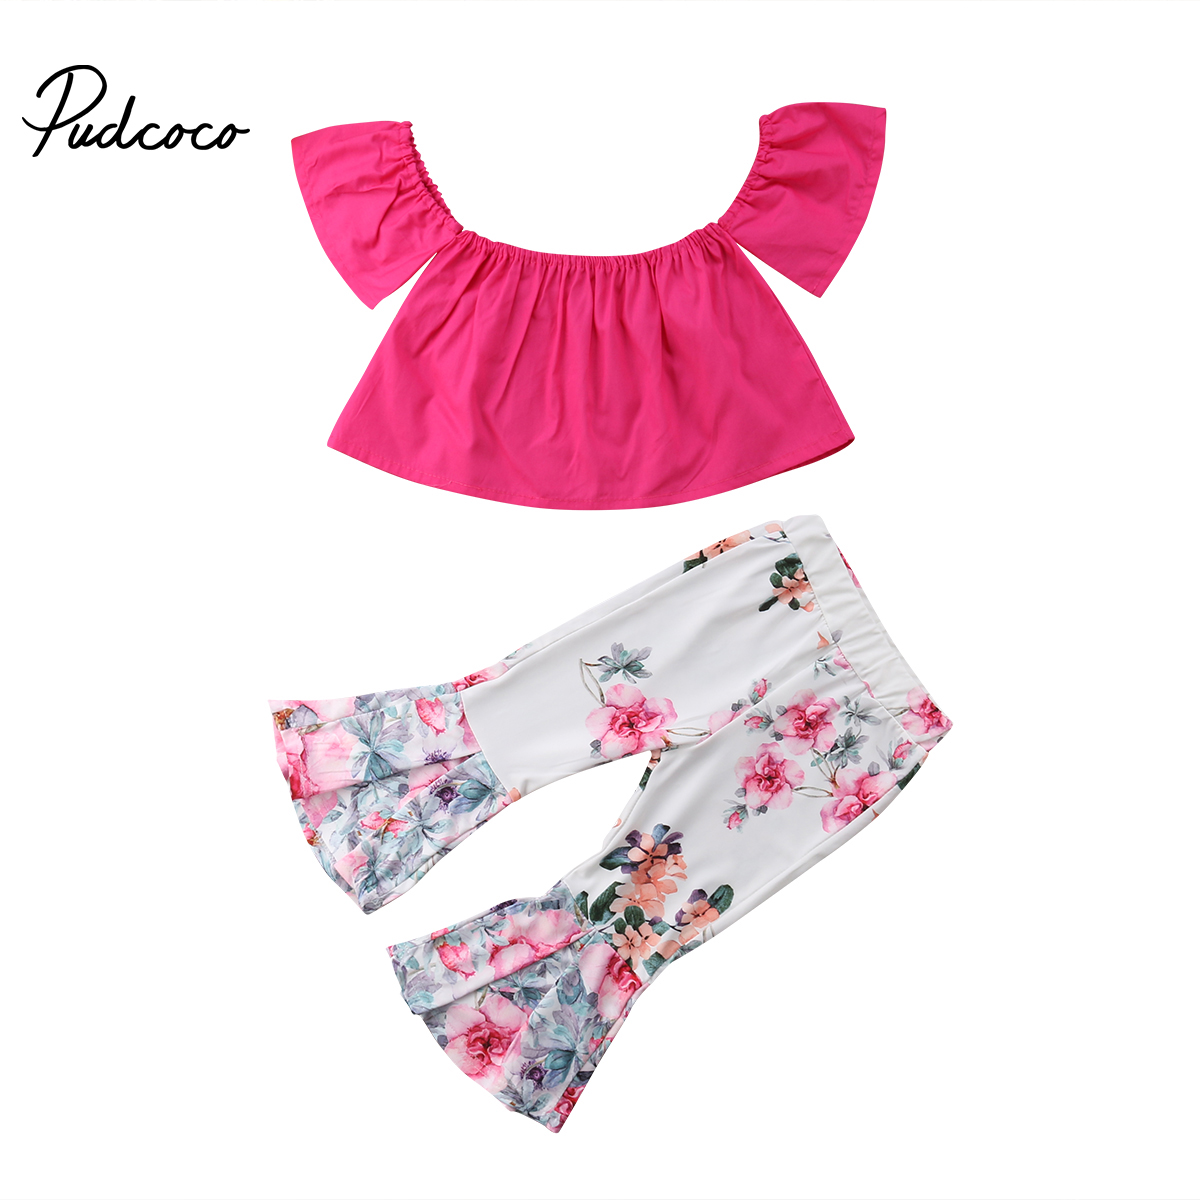 Pudcoco Toddler Baby Girls Summer Clothing Set Off Shoulder Tops Long Flare Flower Pants Leggings Kids Children Clothes